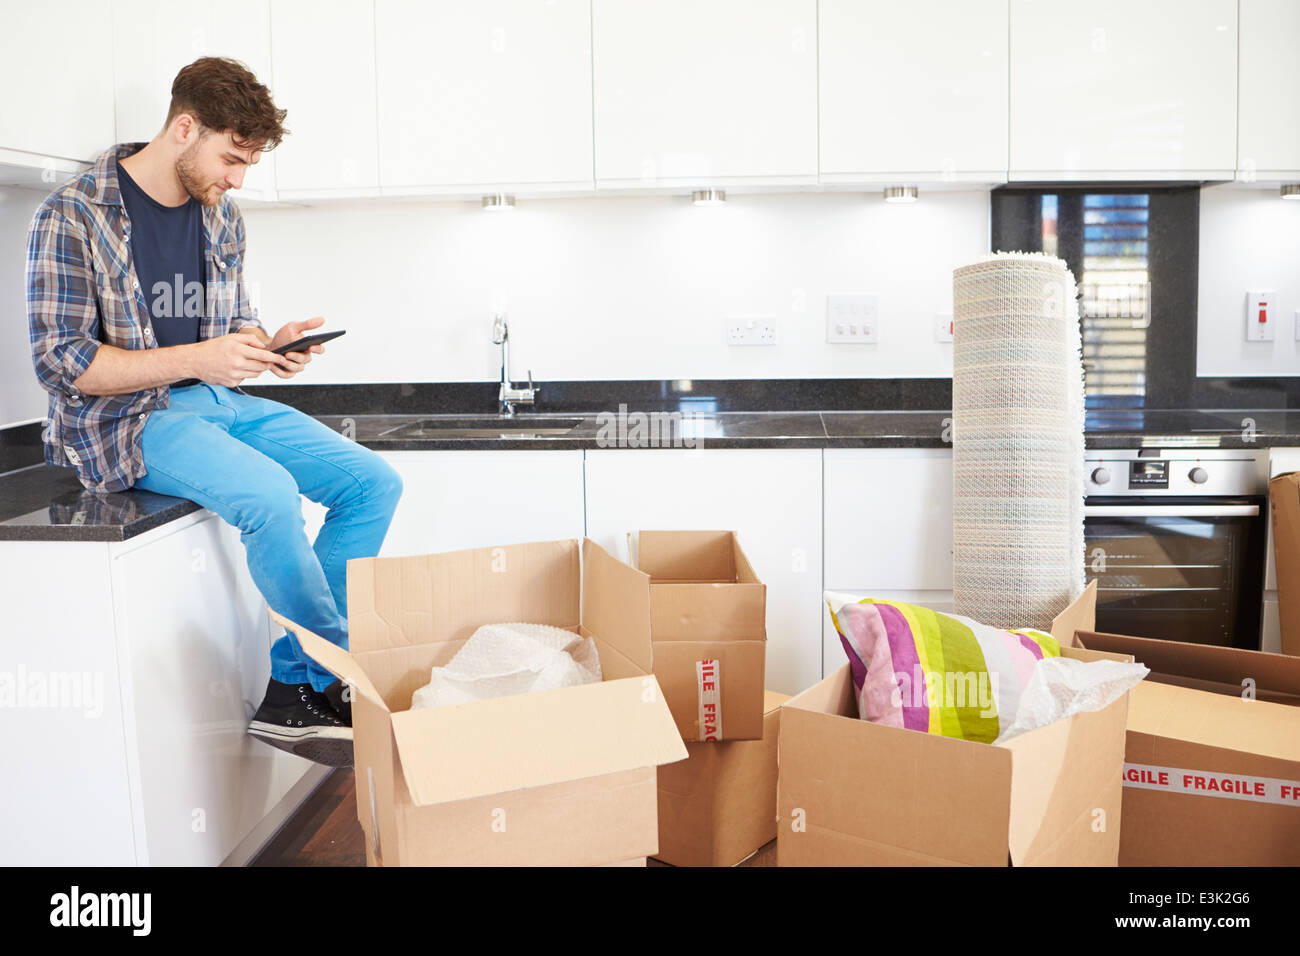 Man Sending Text Message Having Moved Into New Home - Stock Image